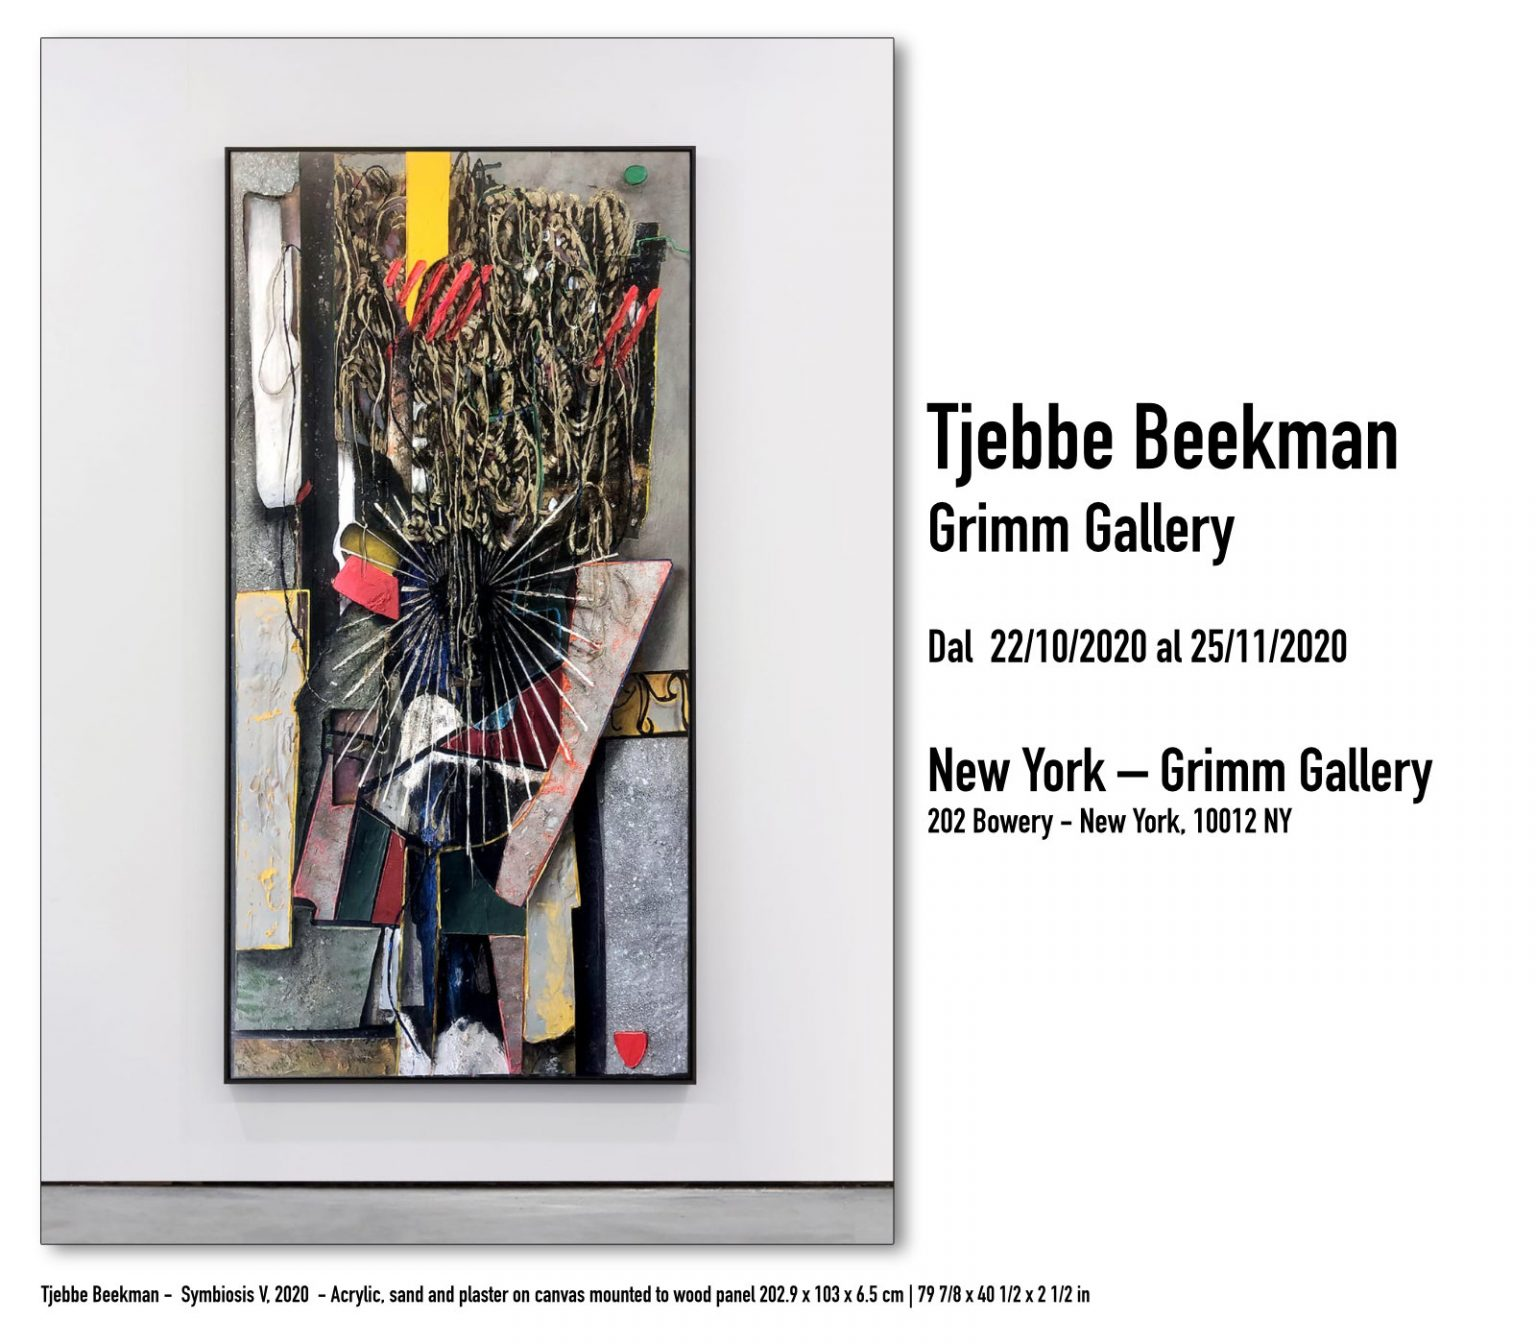 Tjebbe Beekman - Symbiosis V, 2020 - Acrylic, sand and plaster on canvas mounted to wood panel 202.9 x 103 x 6.5 cm   79 7/8 x 40 1/2 x 2 1/2 in